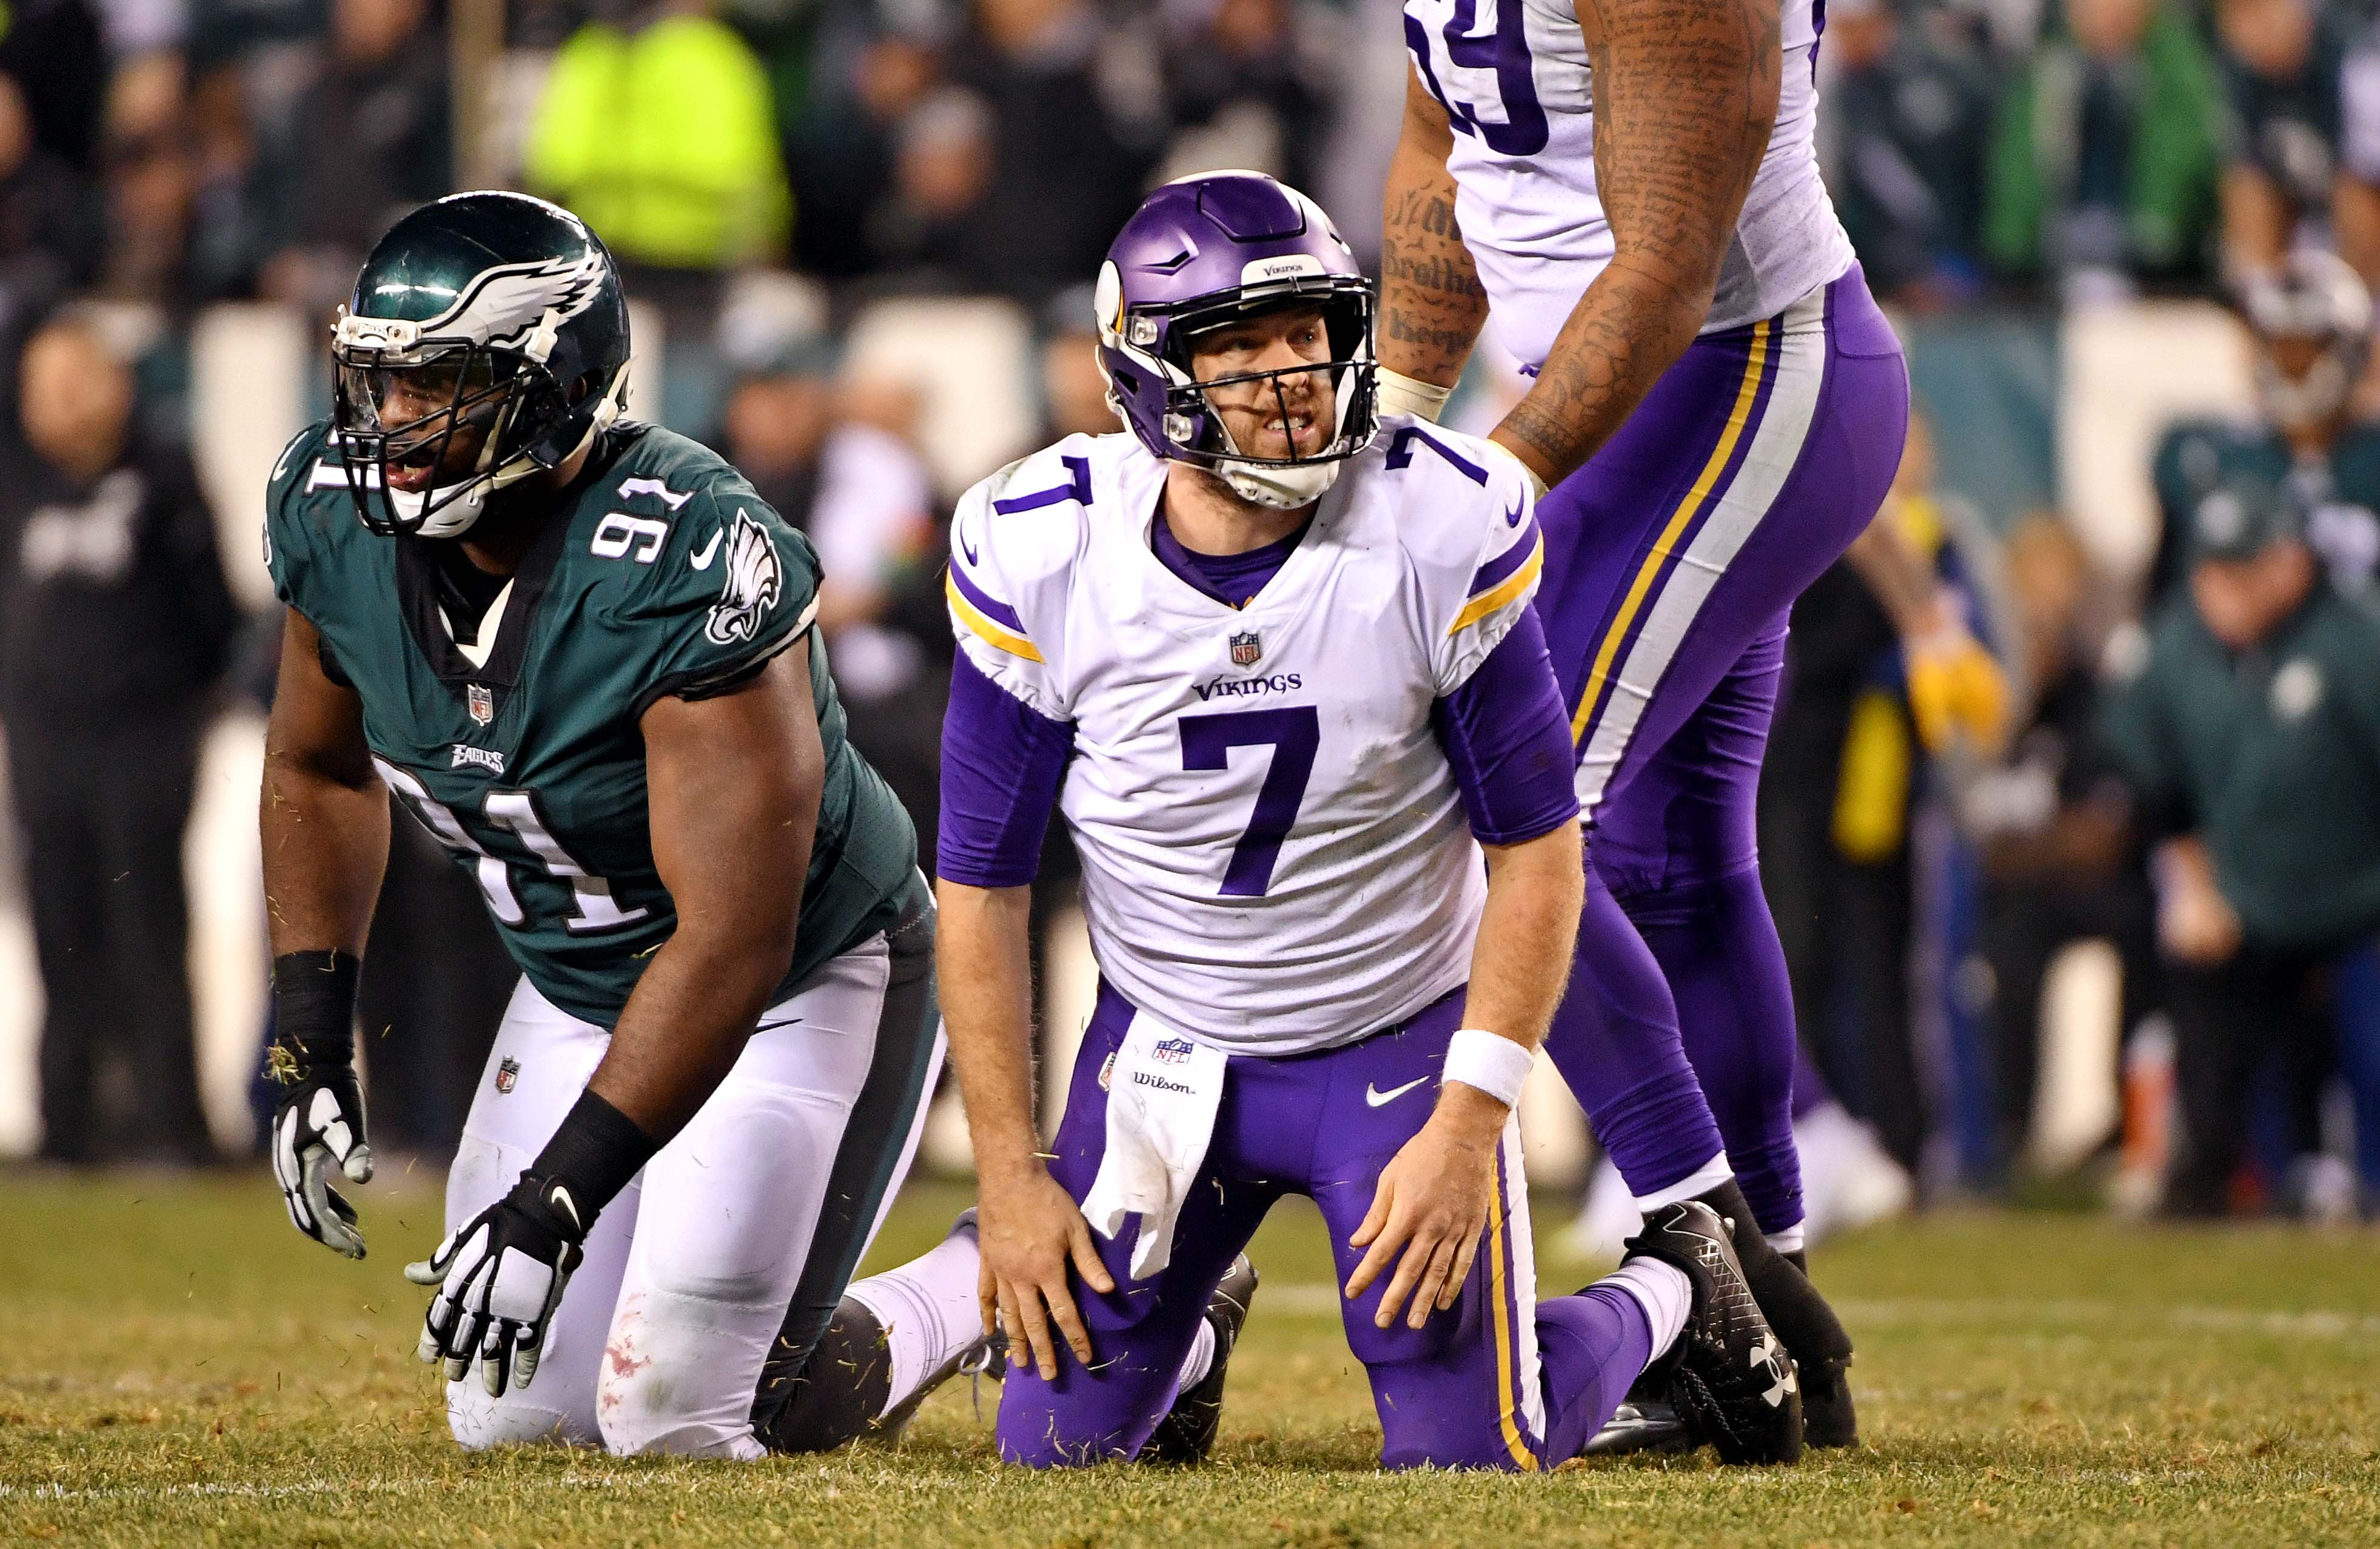 The Vikings' painful playoff history lives on, even after a miraculous win